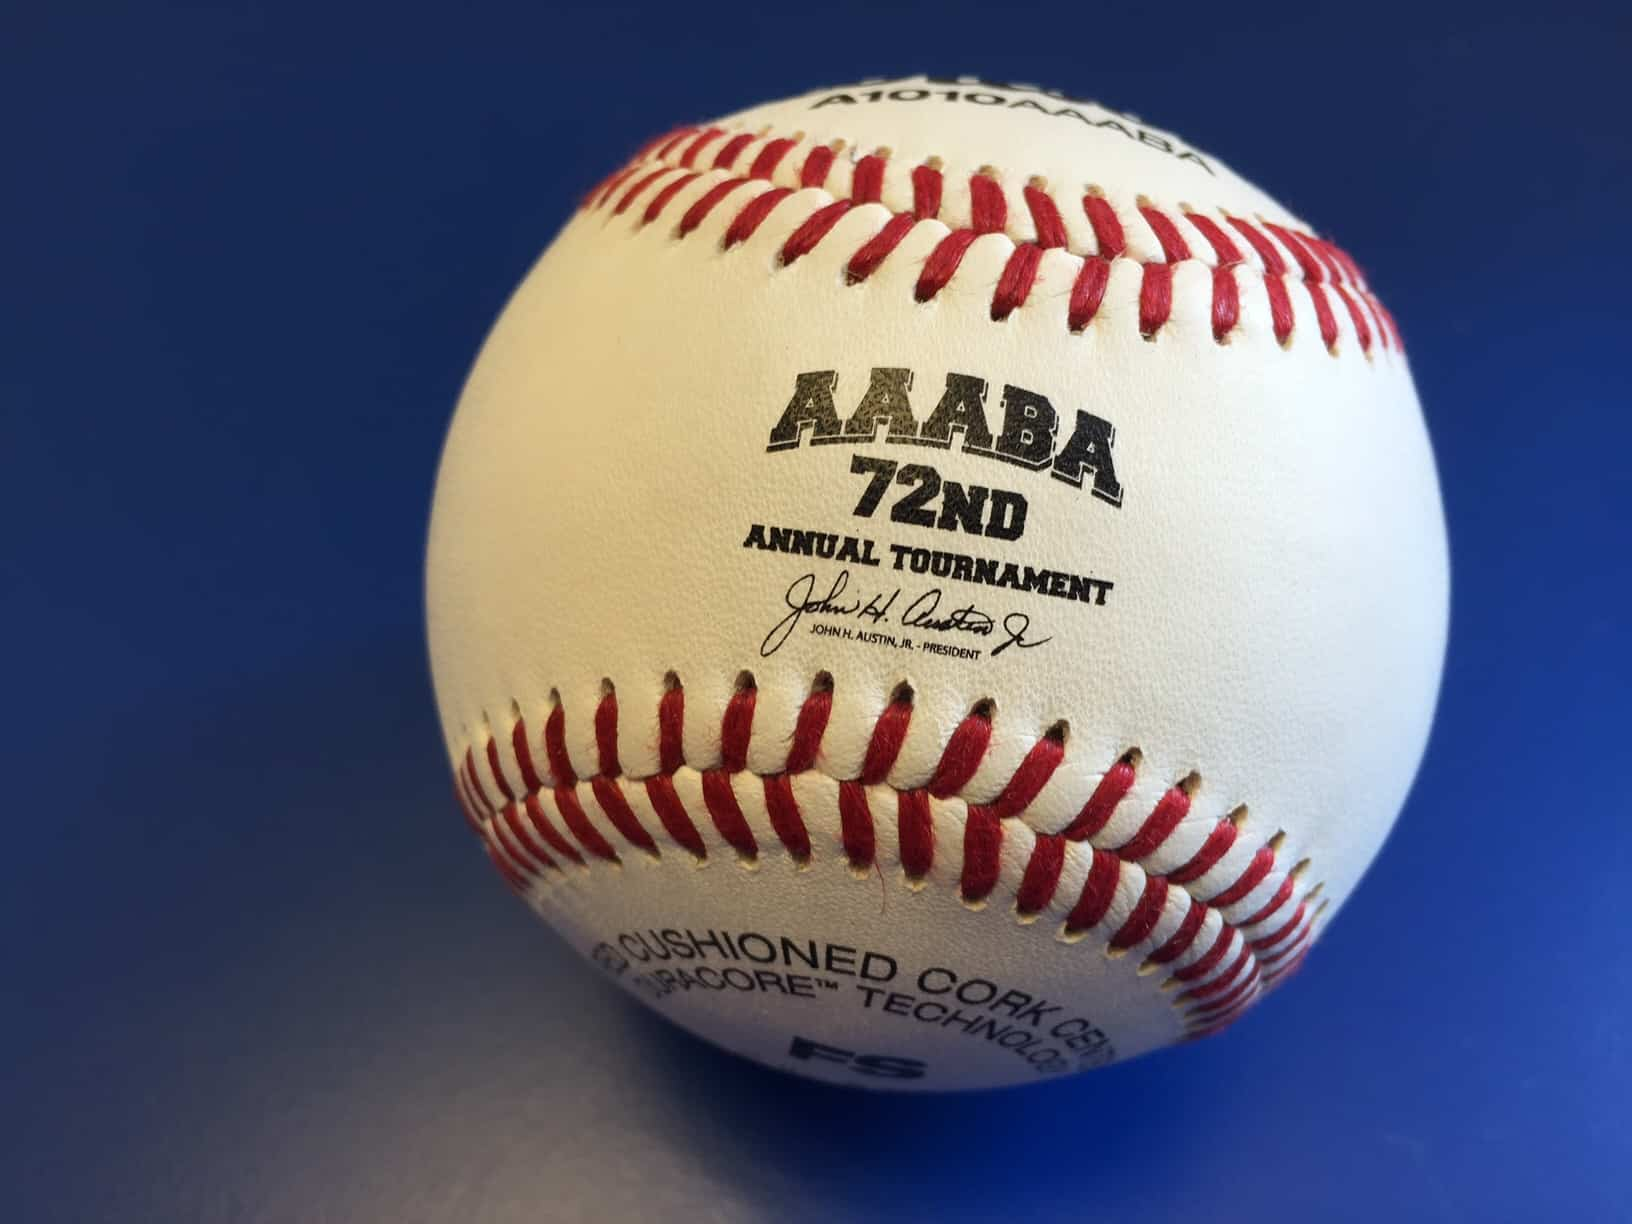 AAABA 72nd tournament baseball